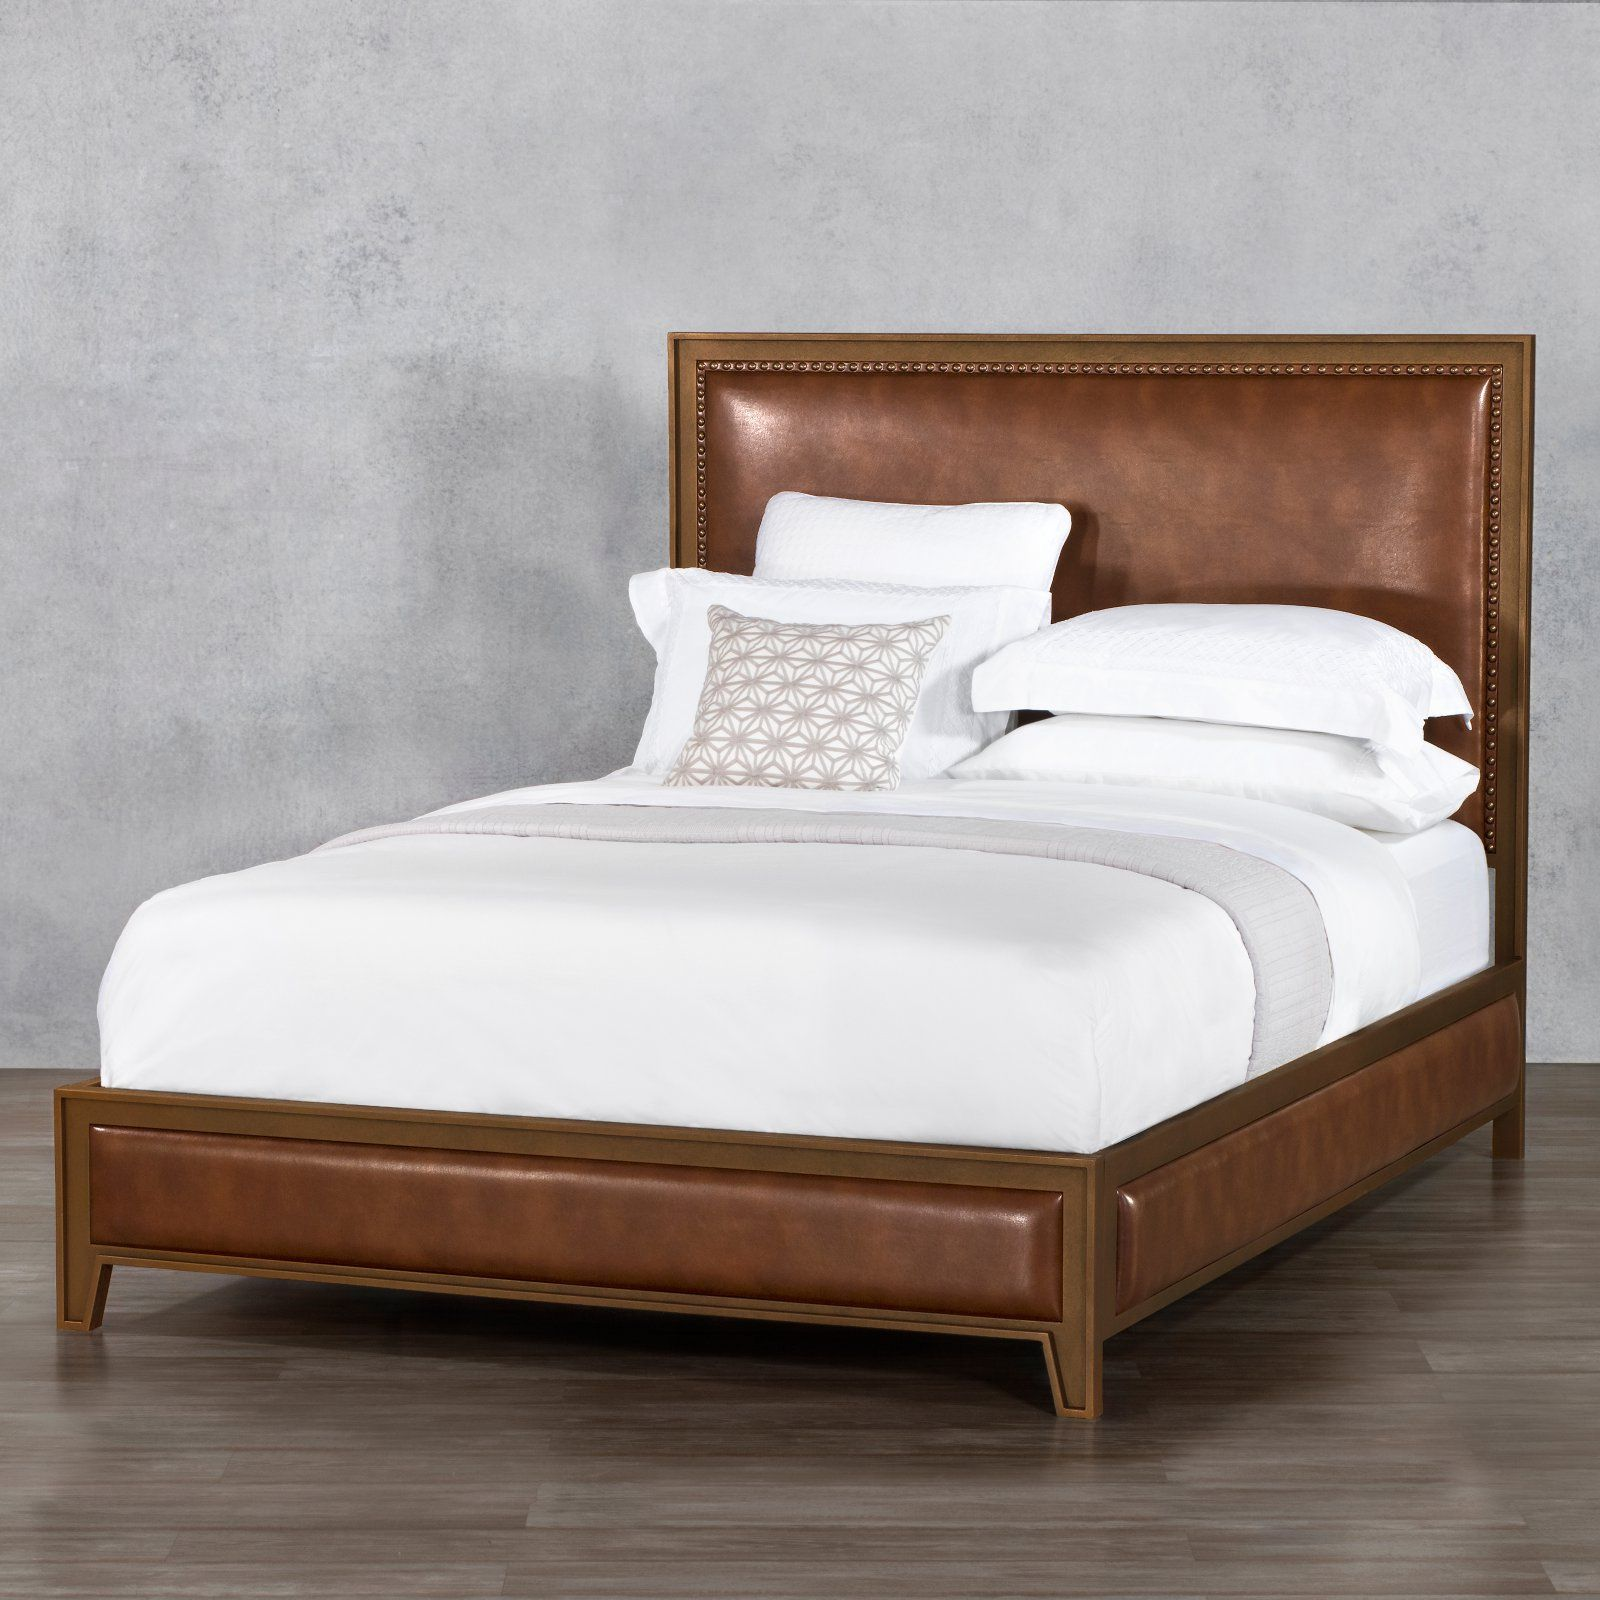 Wesley Allen Avery Bed with Surround Upholstered beds